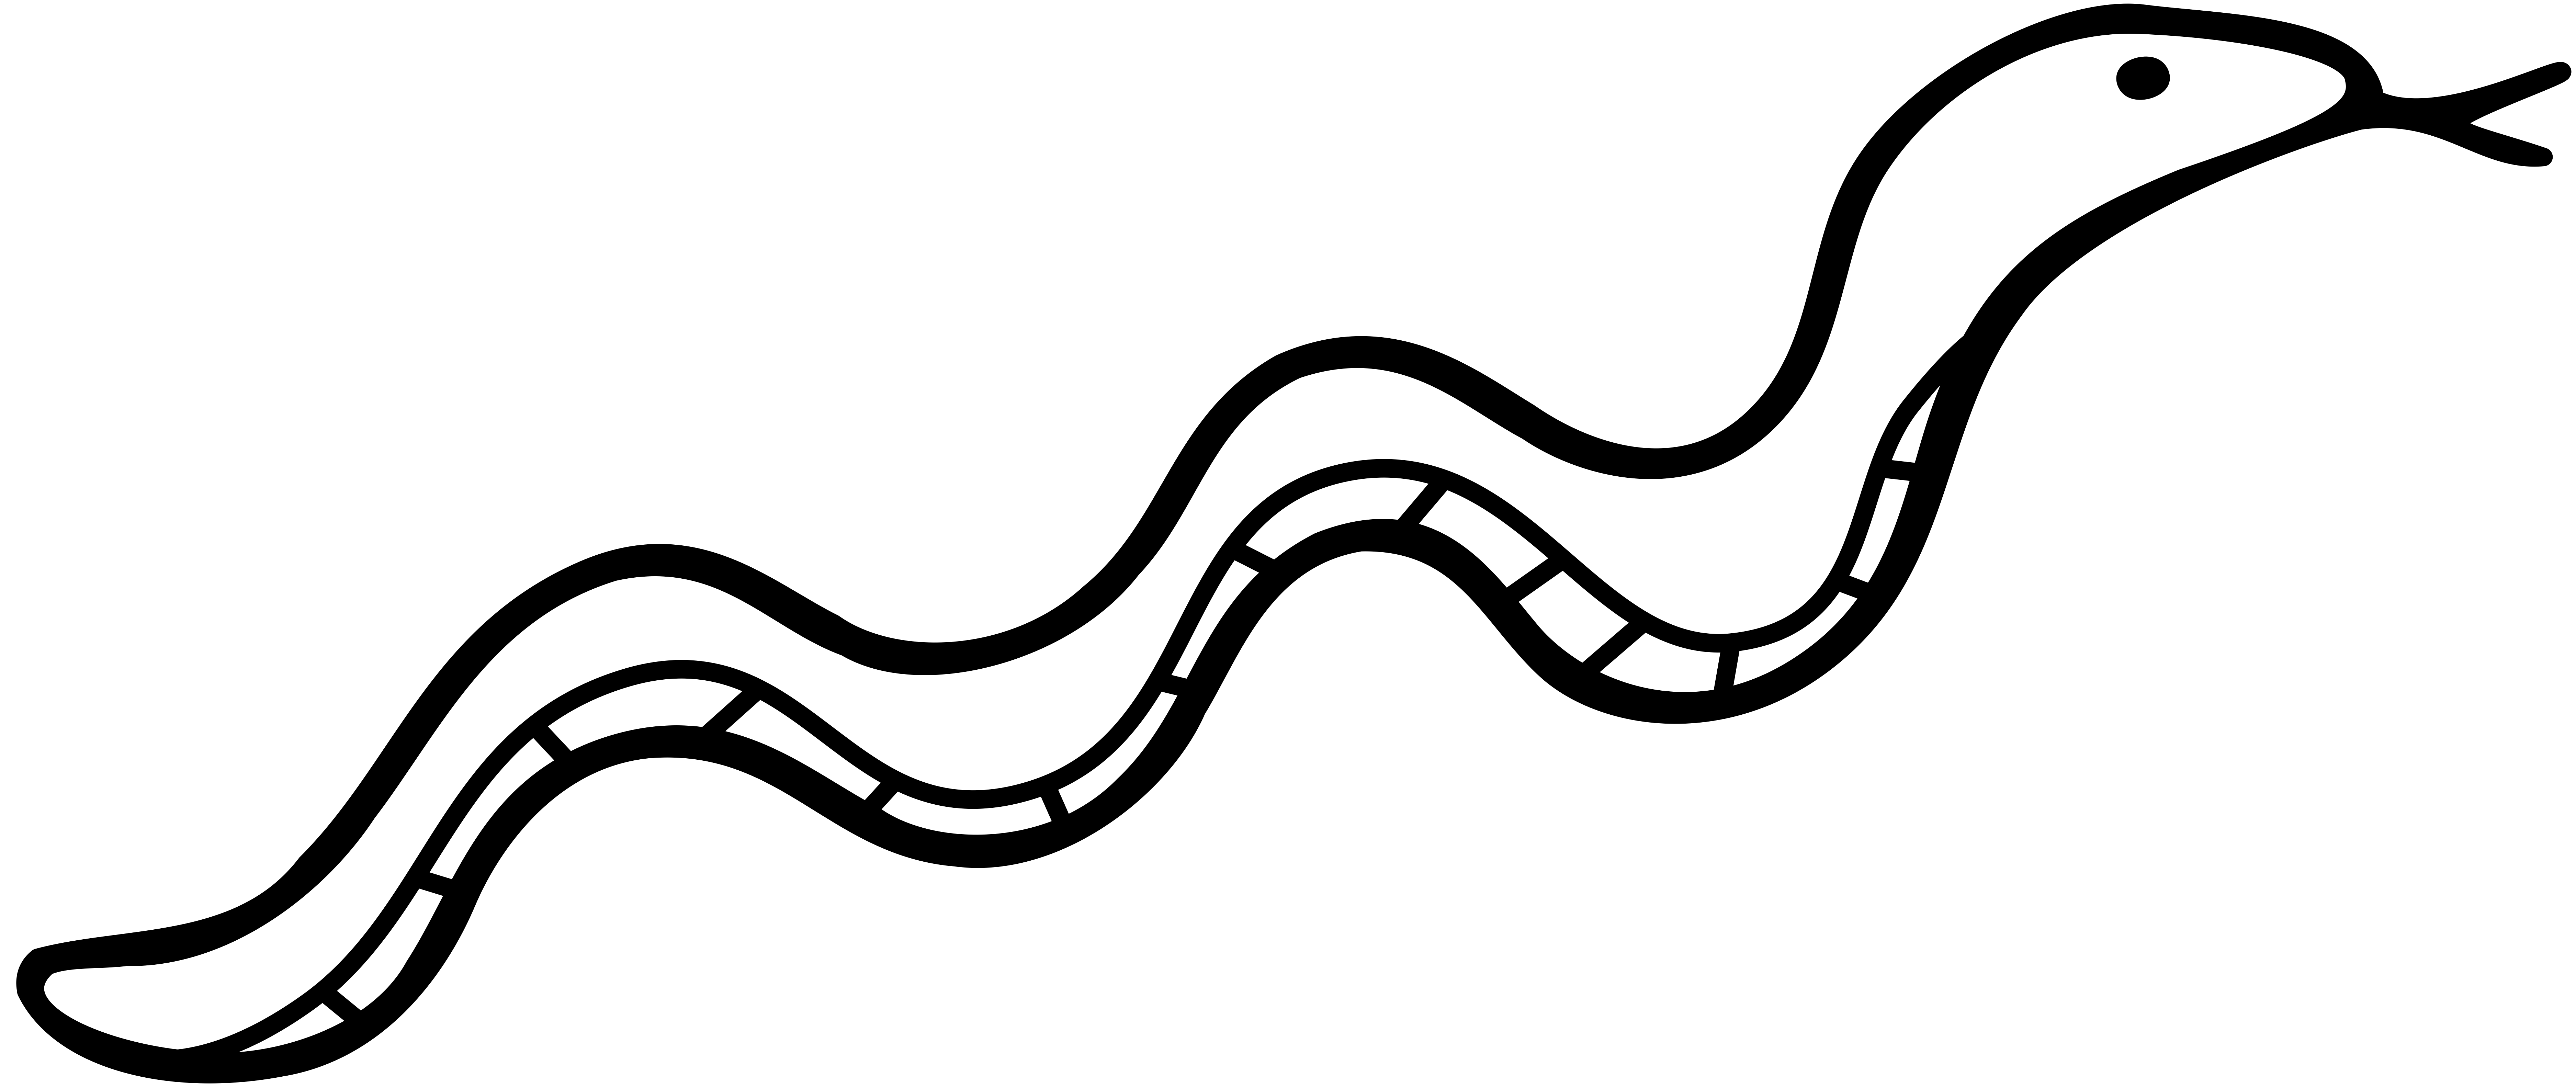 Snake Outline Drawing At Getdrawings